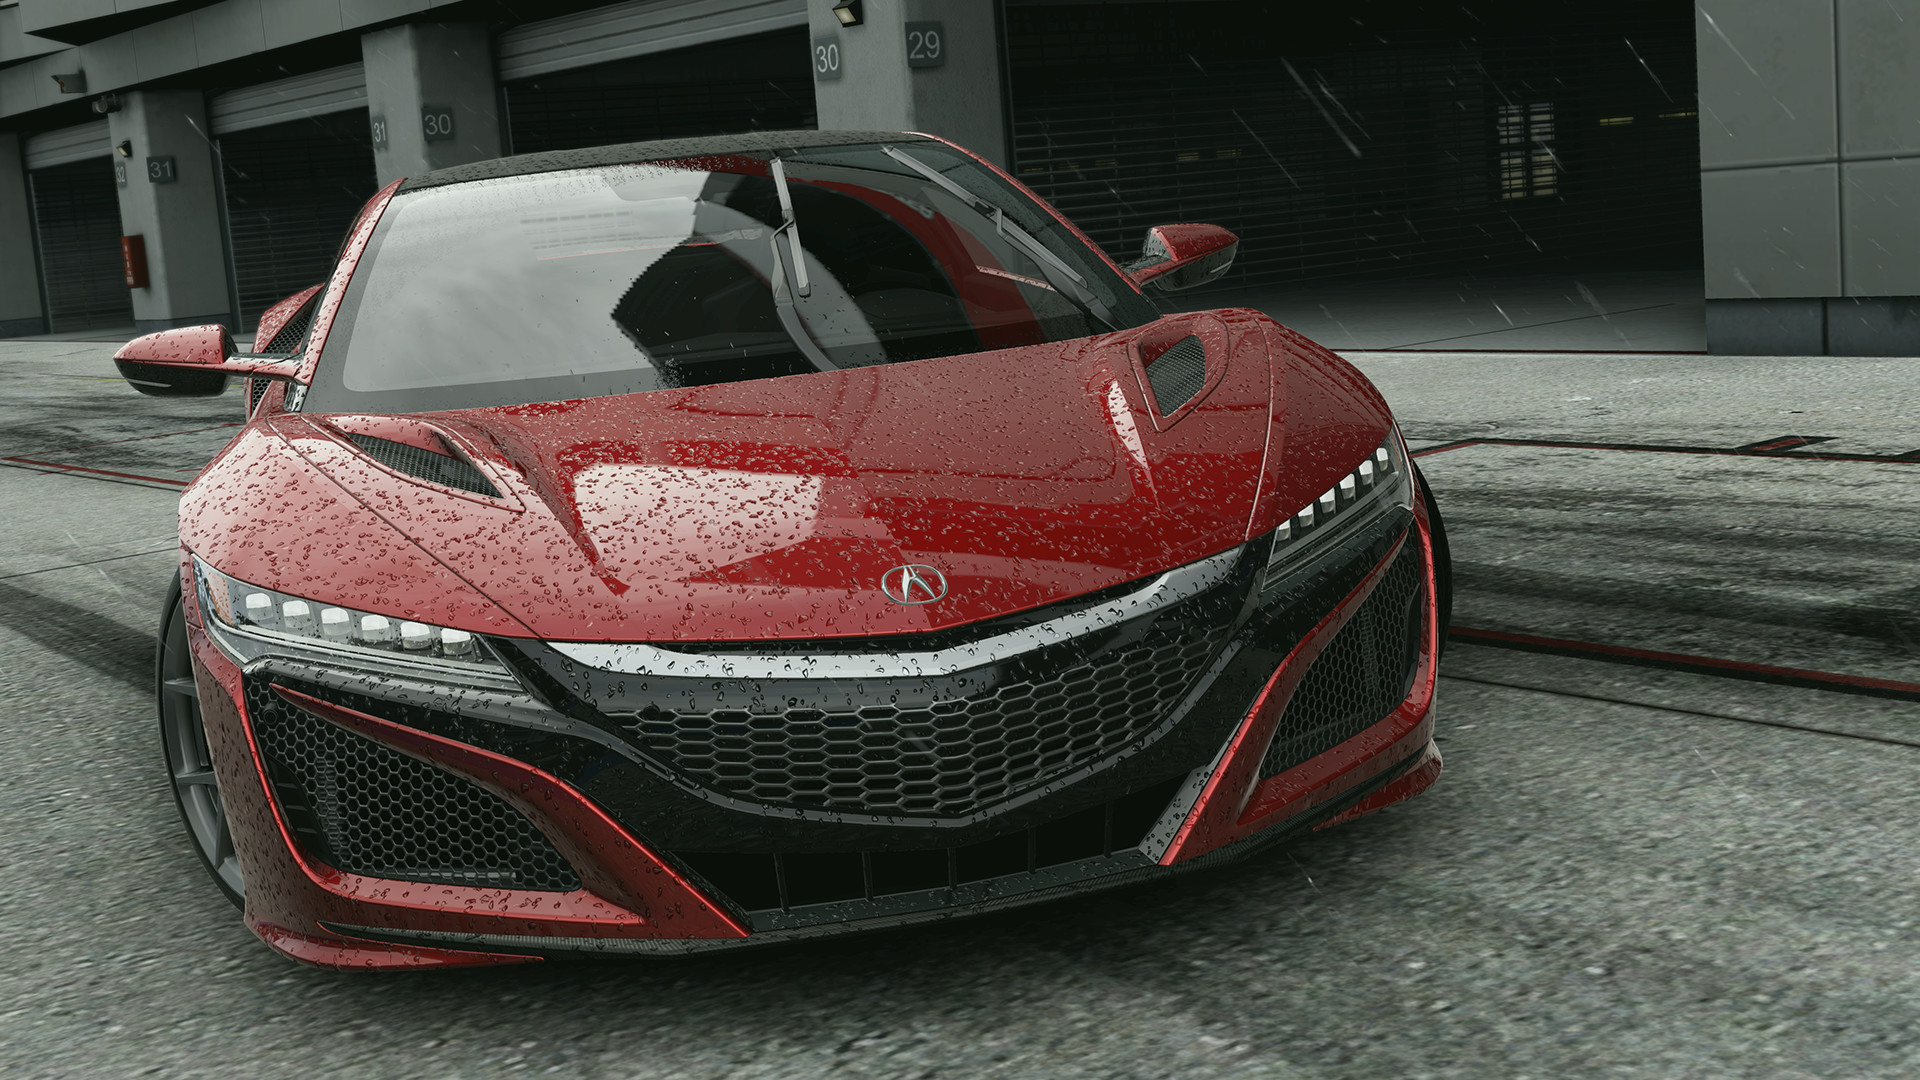 PC PROJECT CARS 2